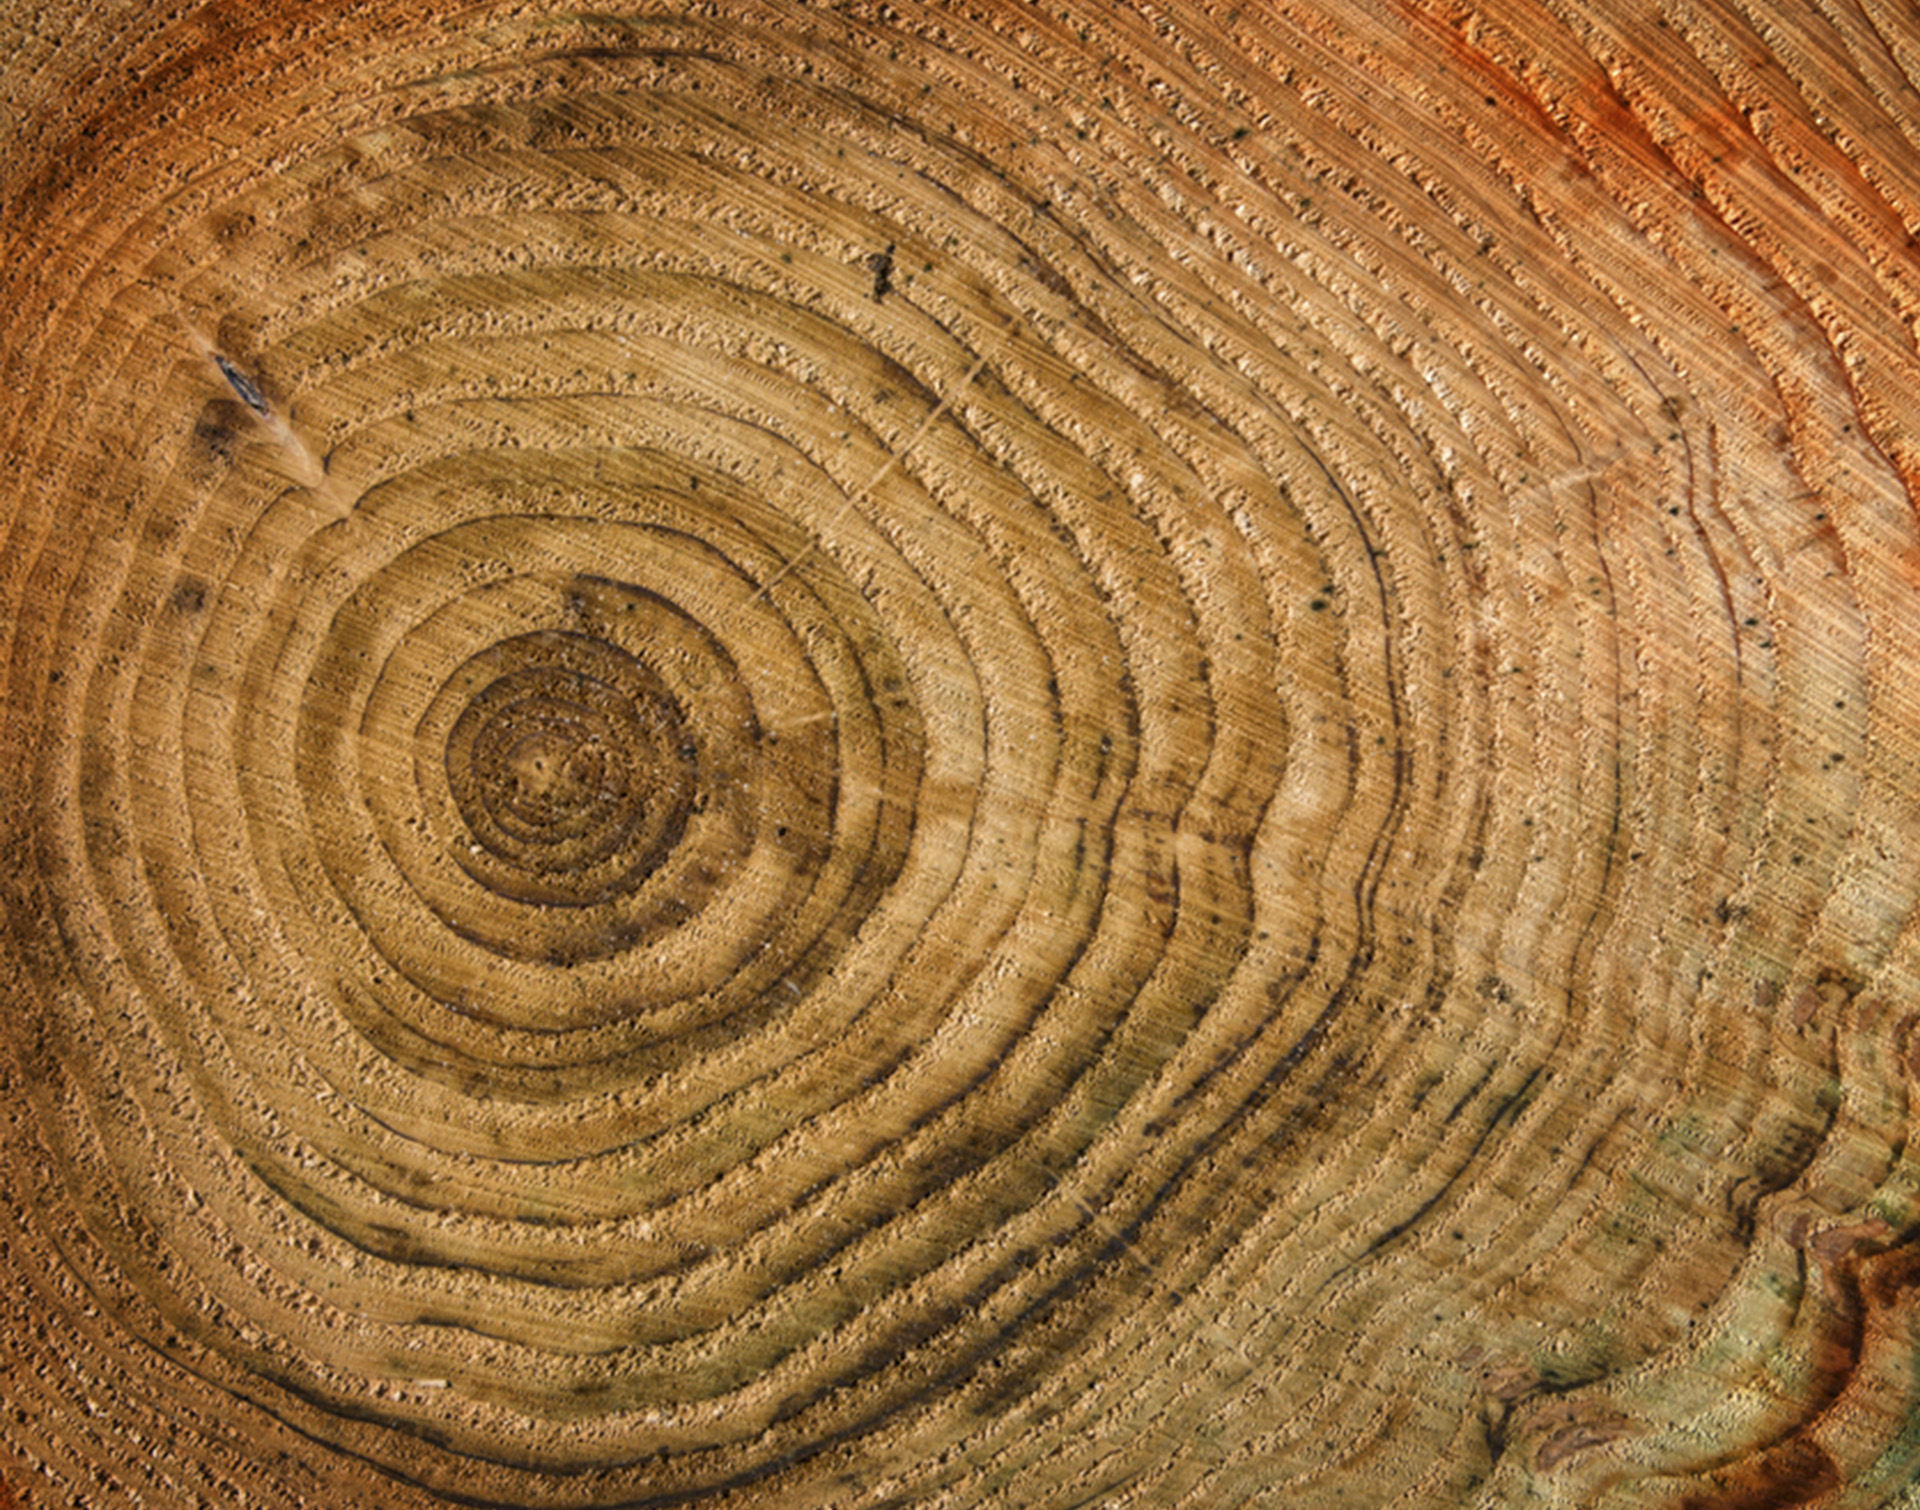 02-depositphotos_2475823-Wooden-background-with-age-circles.jpg